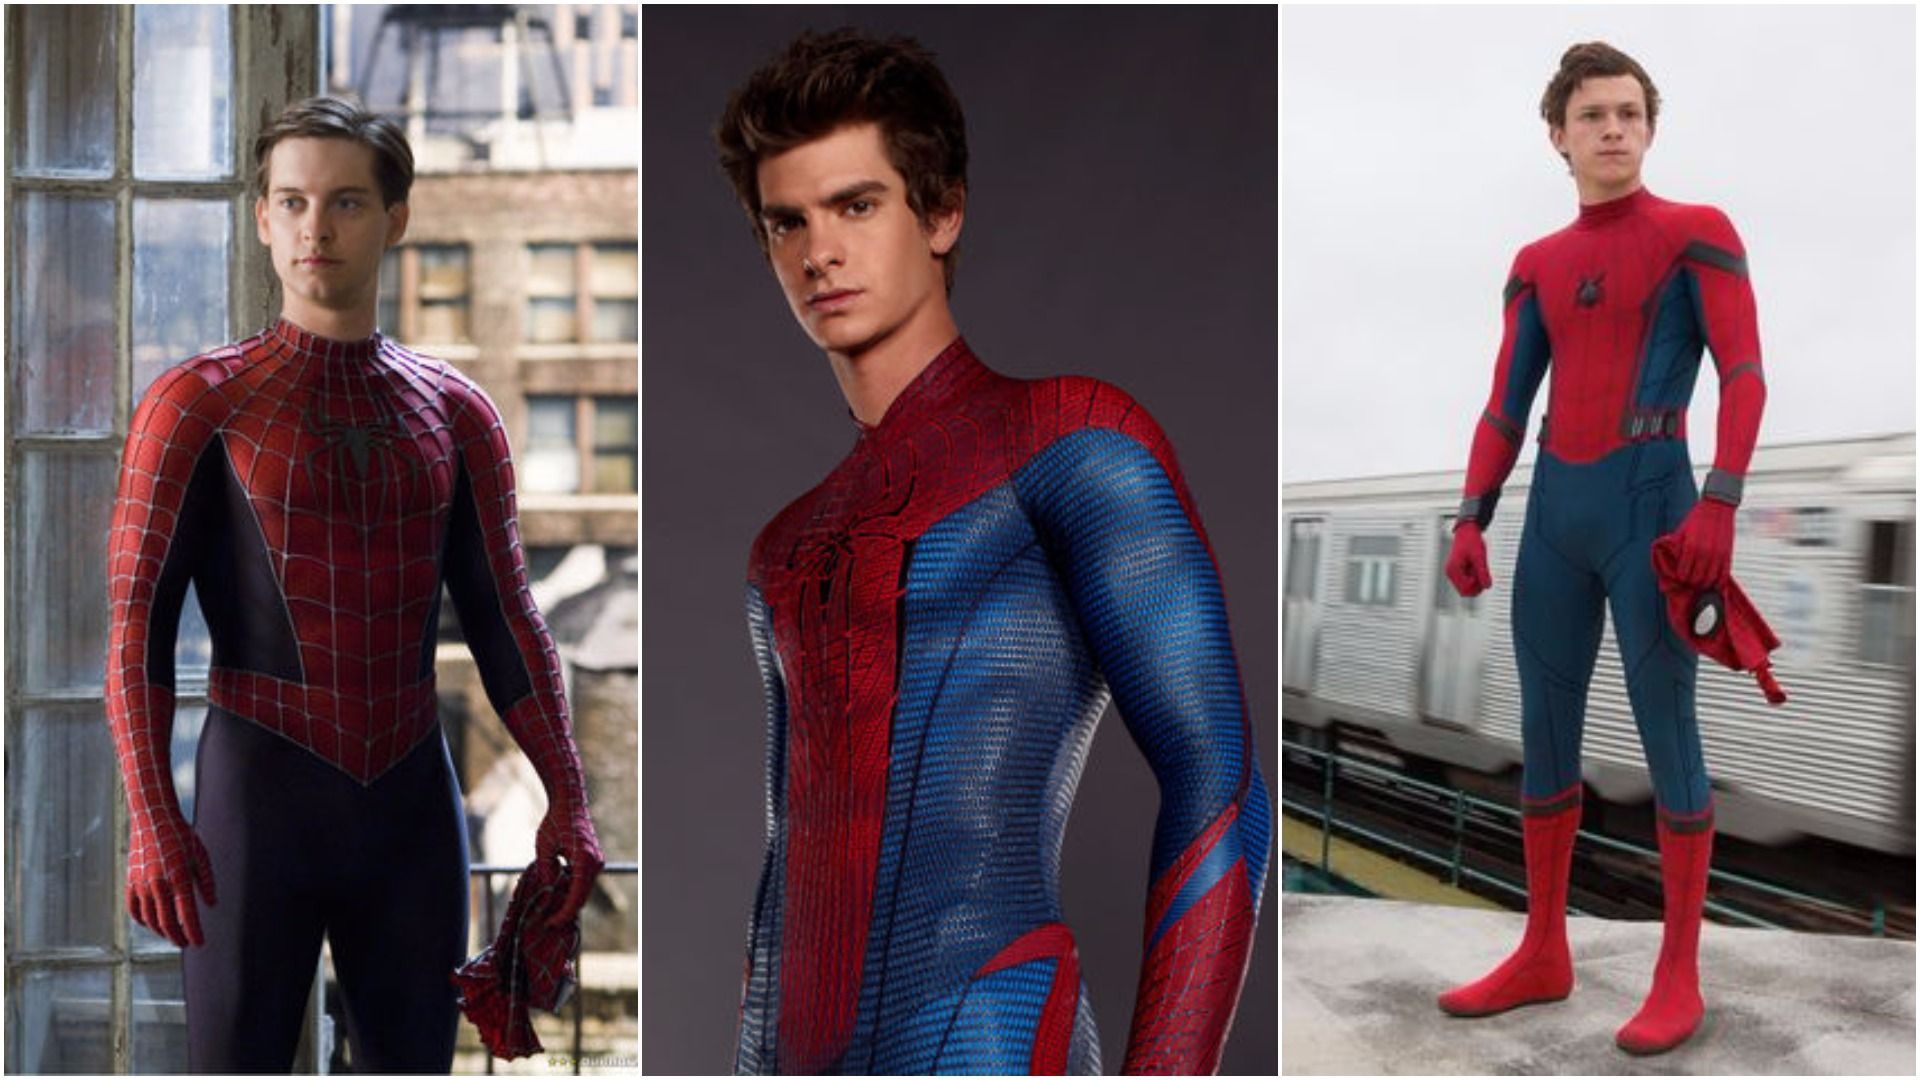 SpiderMan - Unmasked! Who did it better, #TobeyMaguire